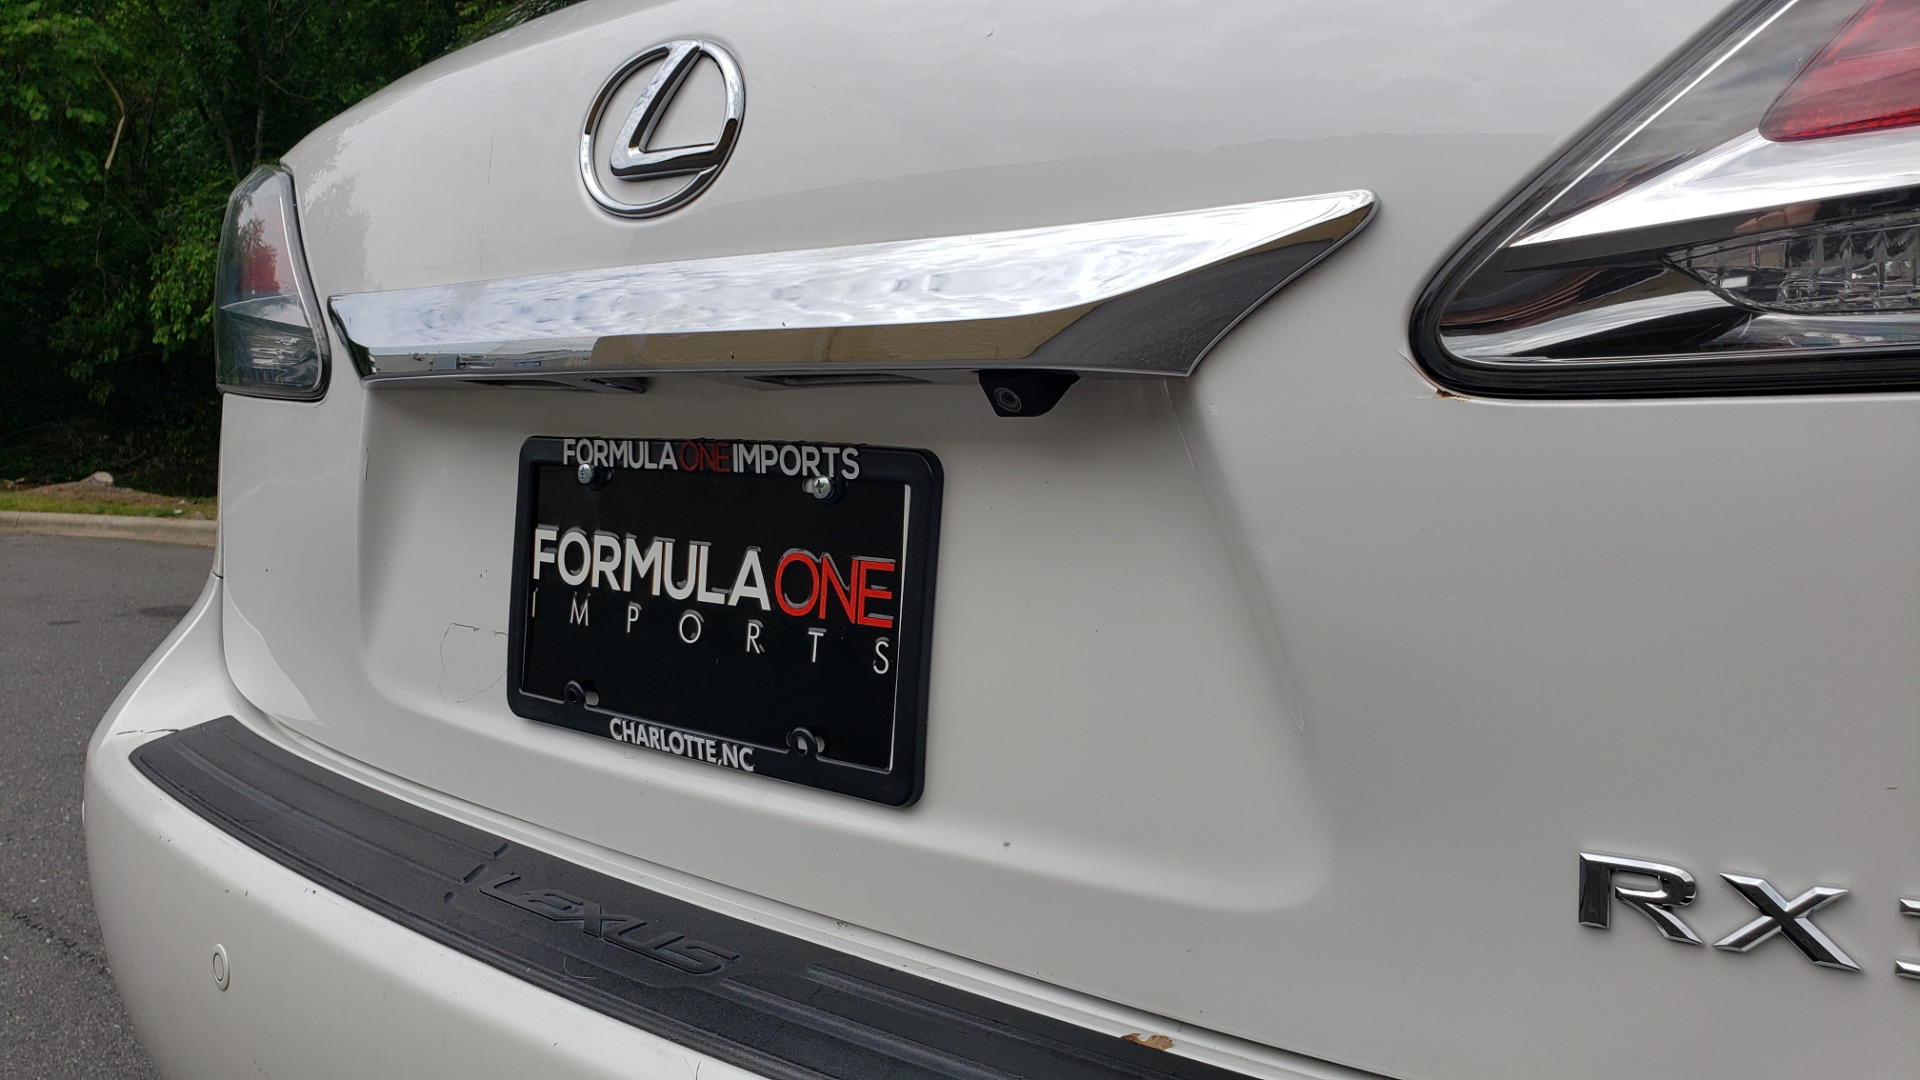 Used 2013 Lexus RX 350 PREMIUM PKG / SUNROOF / BSM / PARK ASST / REARVIEW for sale Sold at Formula Imports in Charlotte NC 28227 30